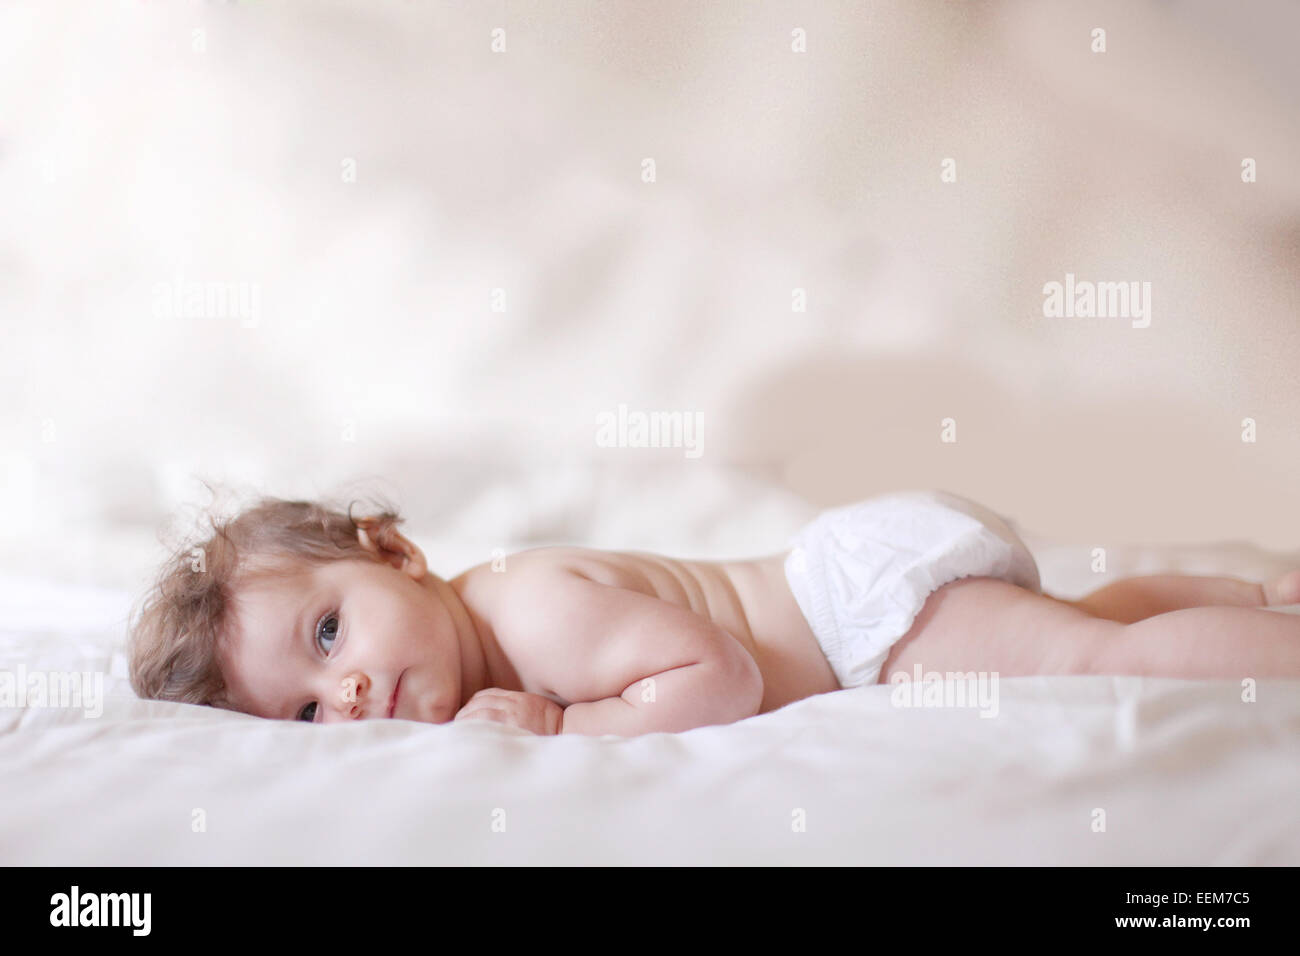 Baby girl lying on bed and looking at camera - Stock Image